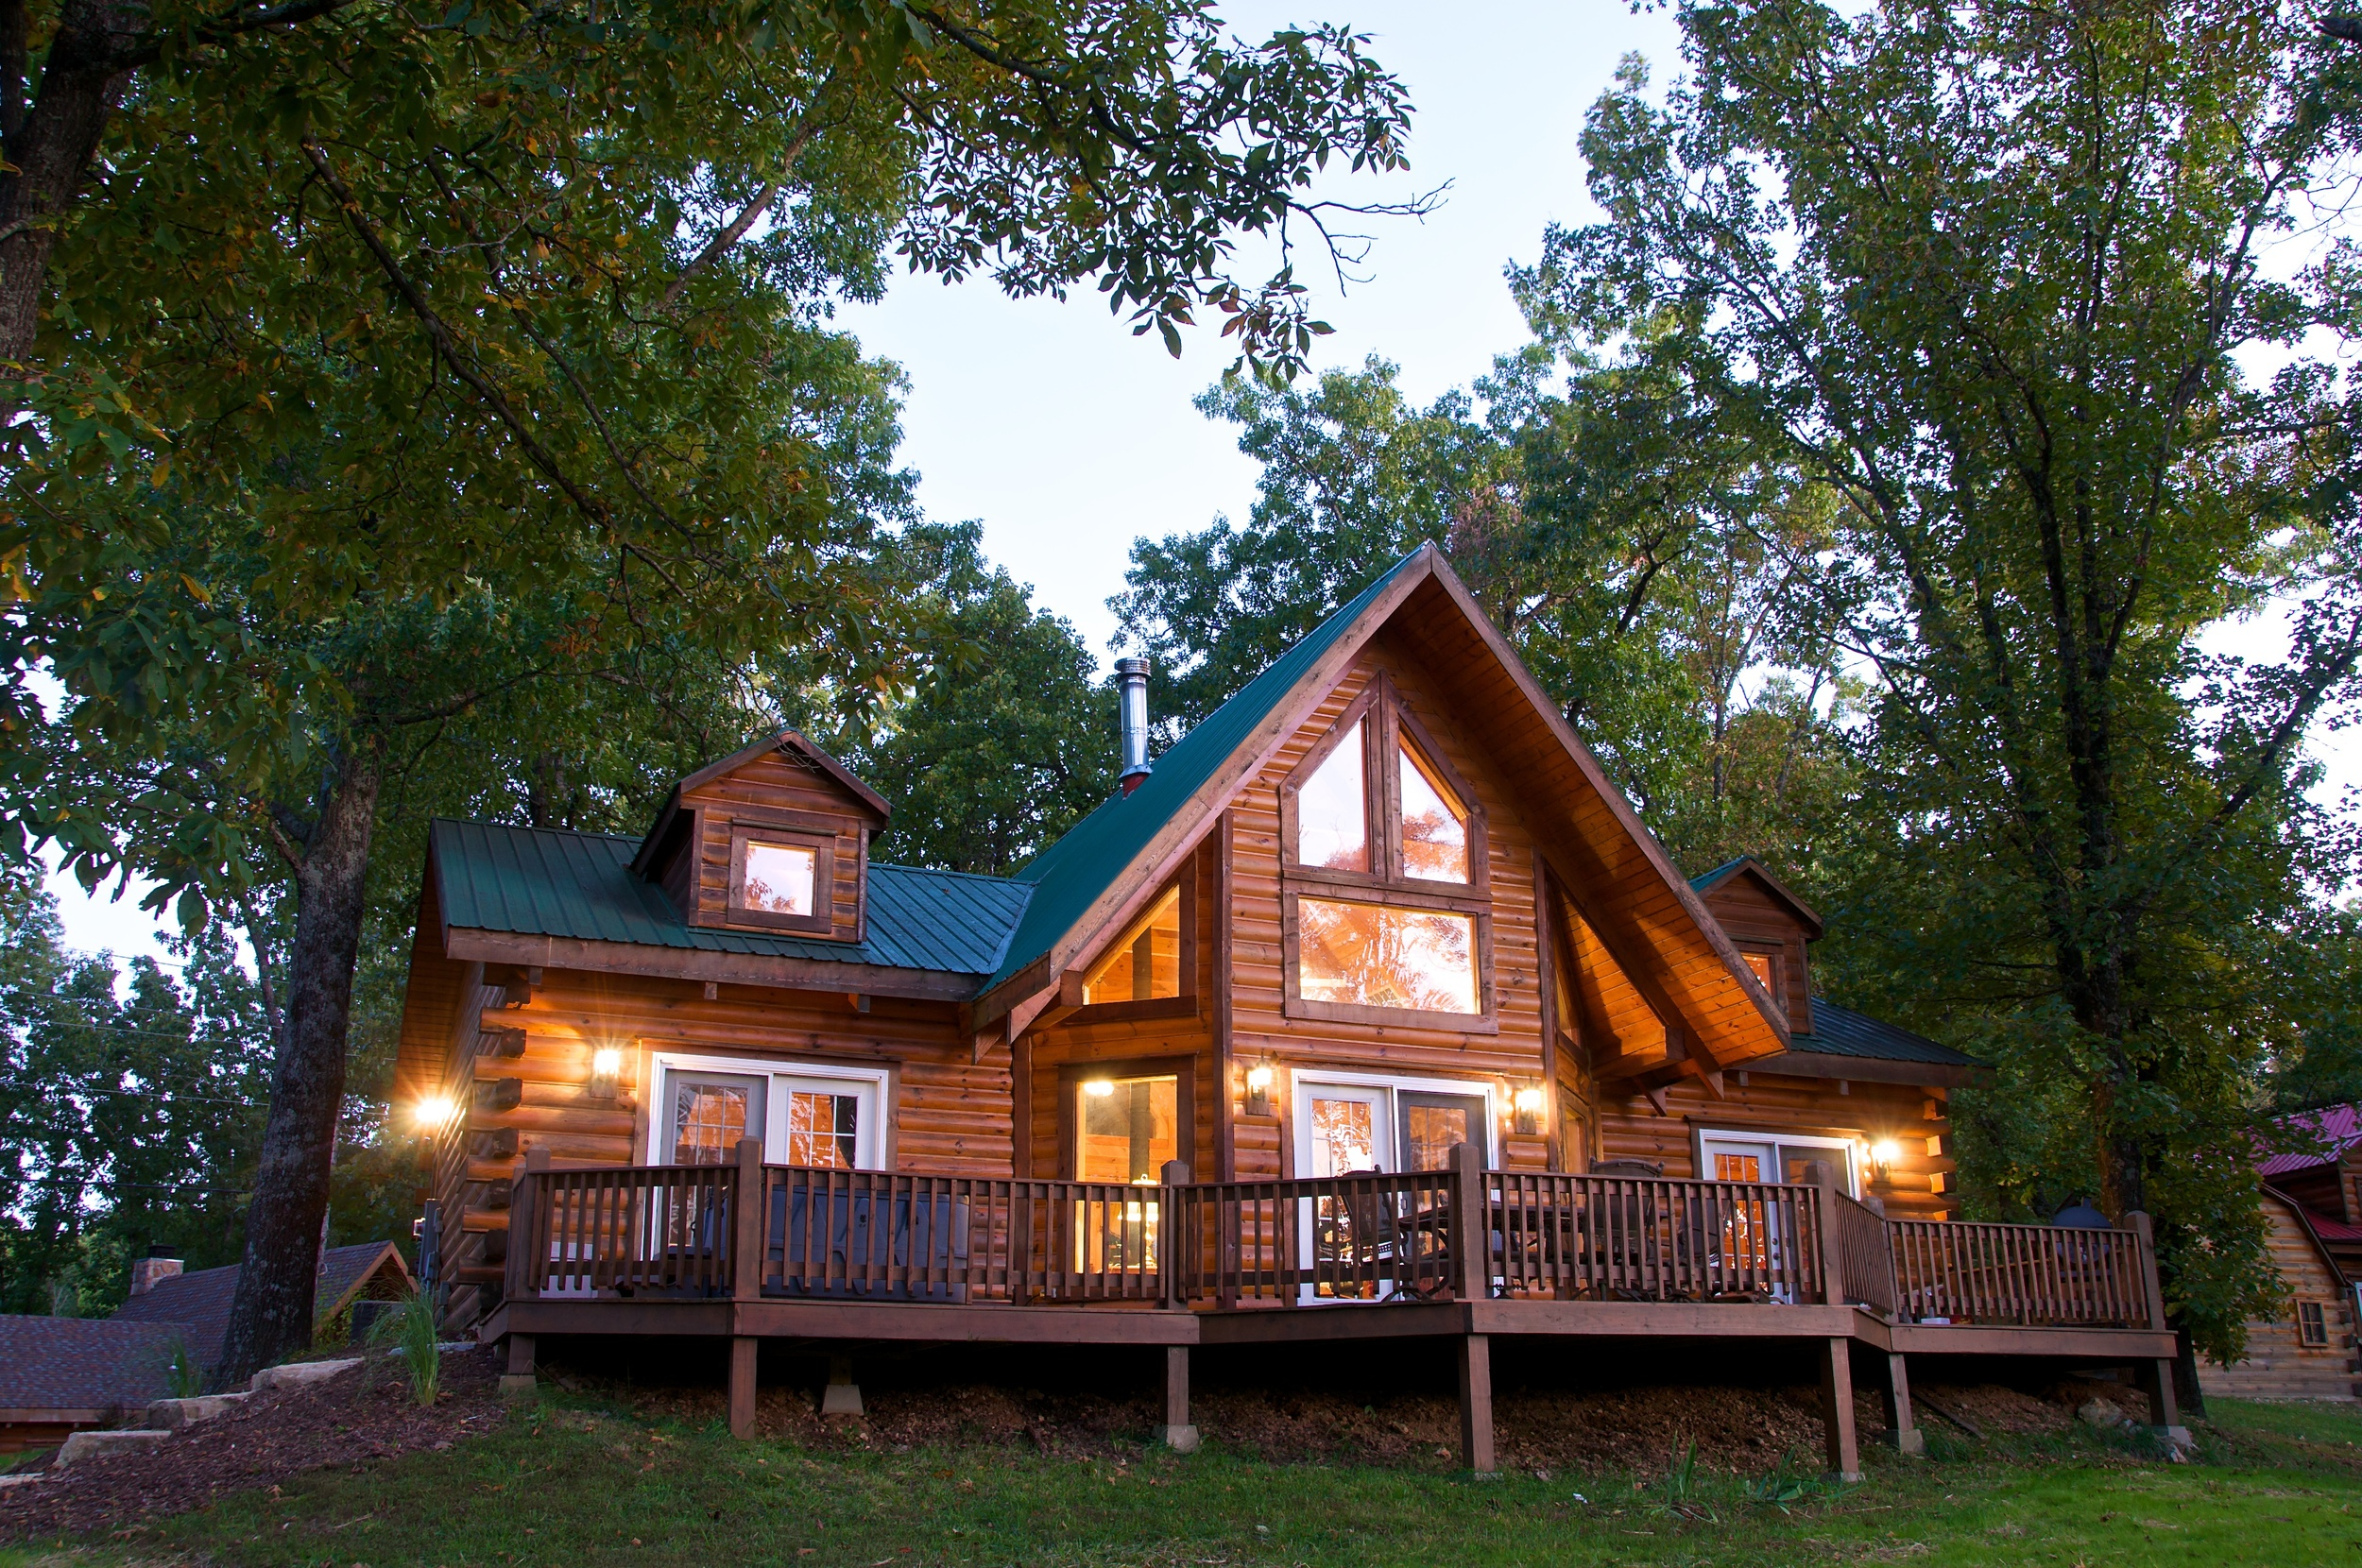 fireplace construction cabin with location cabins htm rental dsc and this branson bedroom authentic hot rentals woods features pools log vrp tub